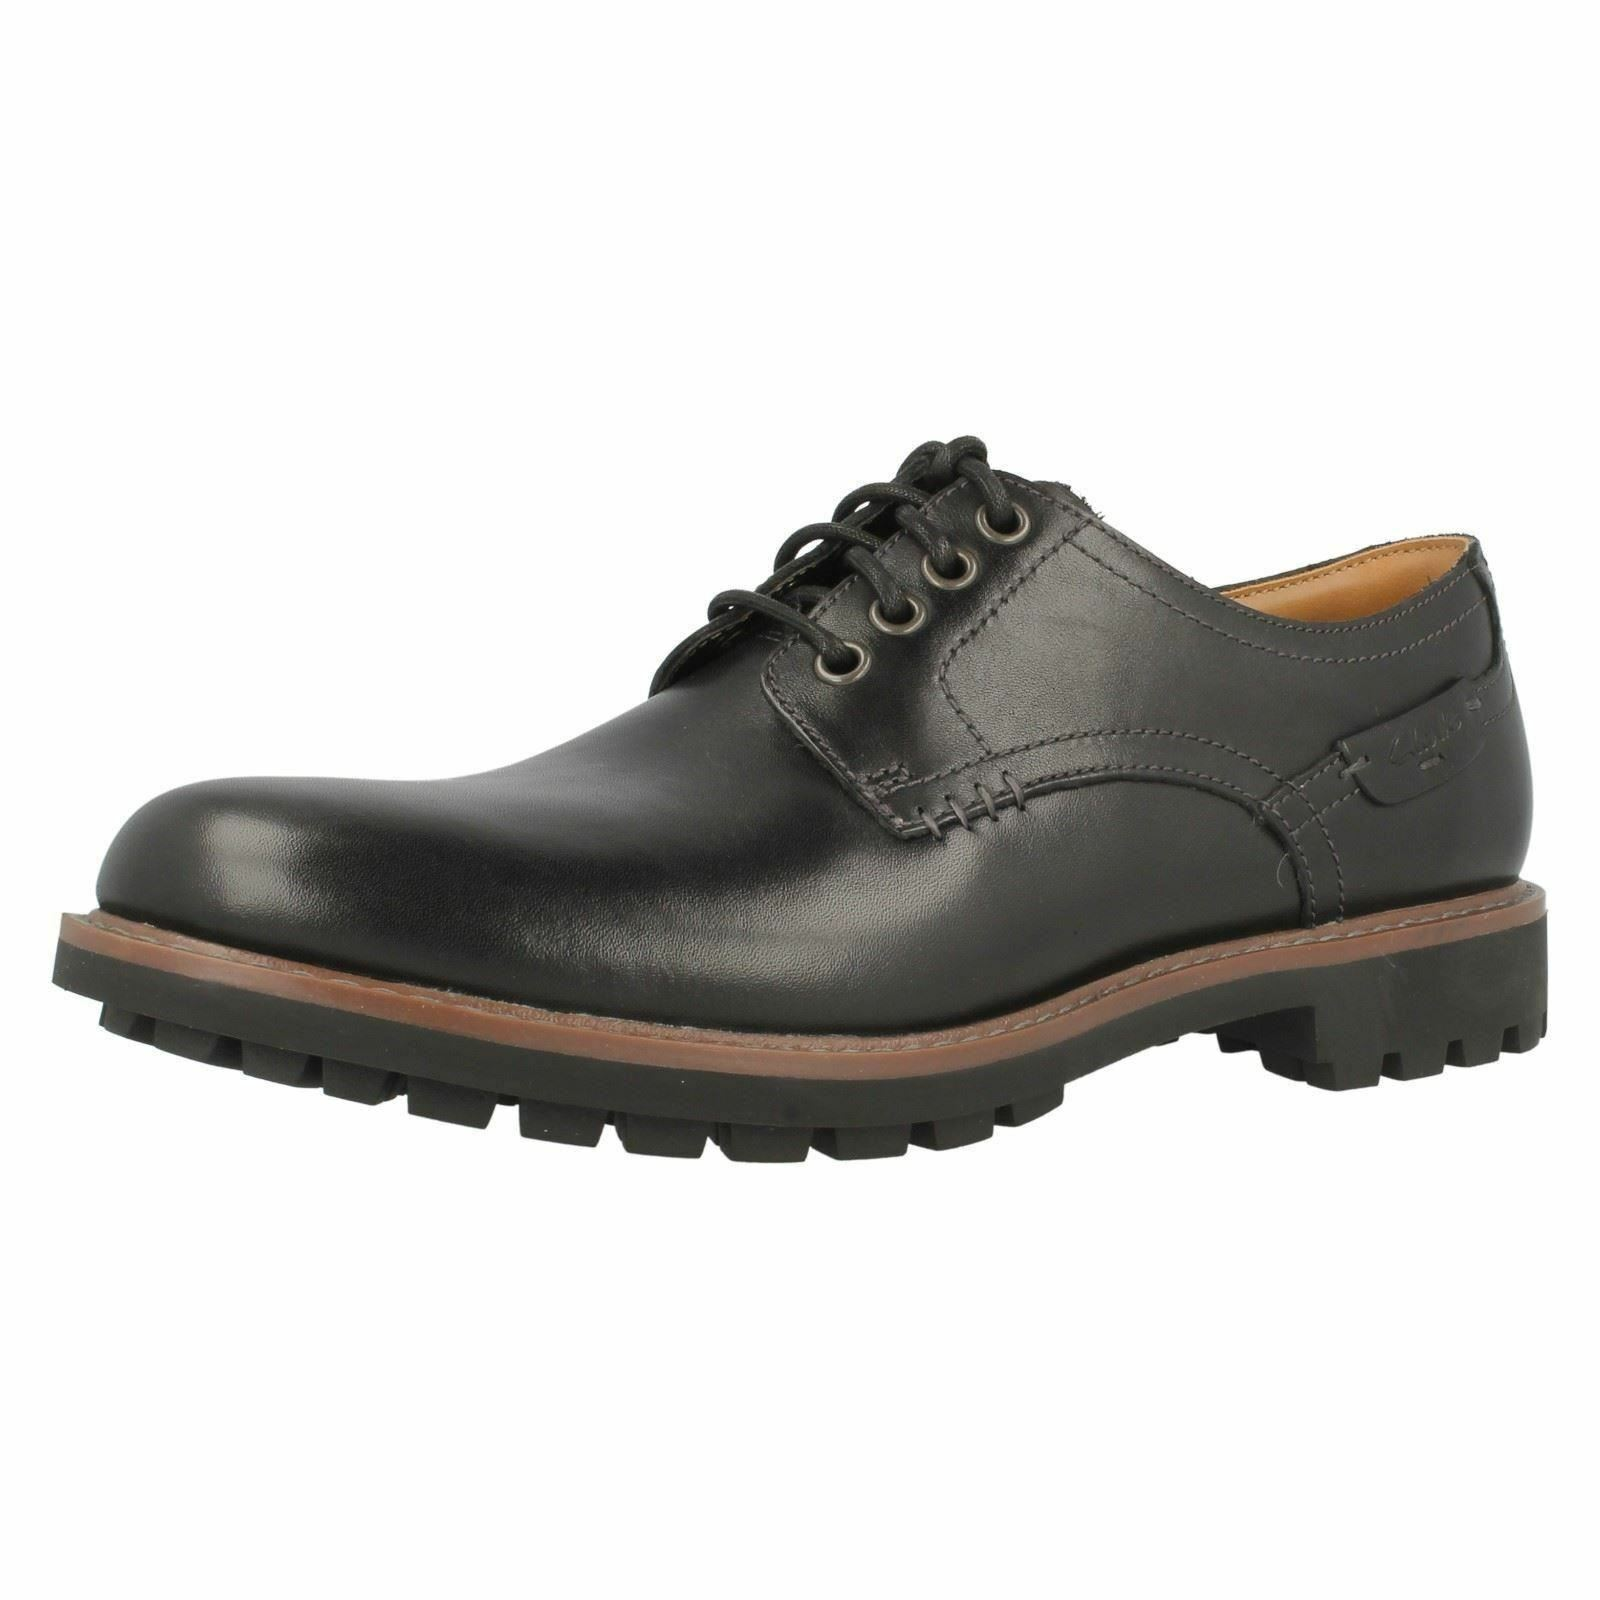 Mens Clarks Montacute Hall Black Leather Casual Lace Up Derby shoes